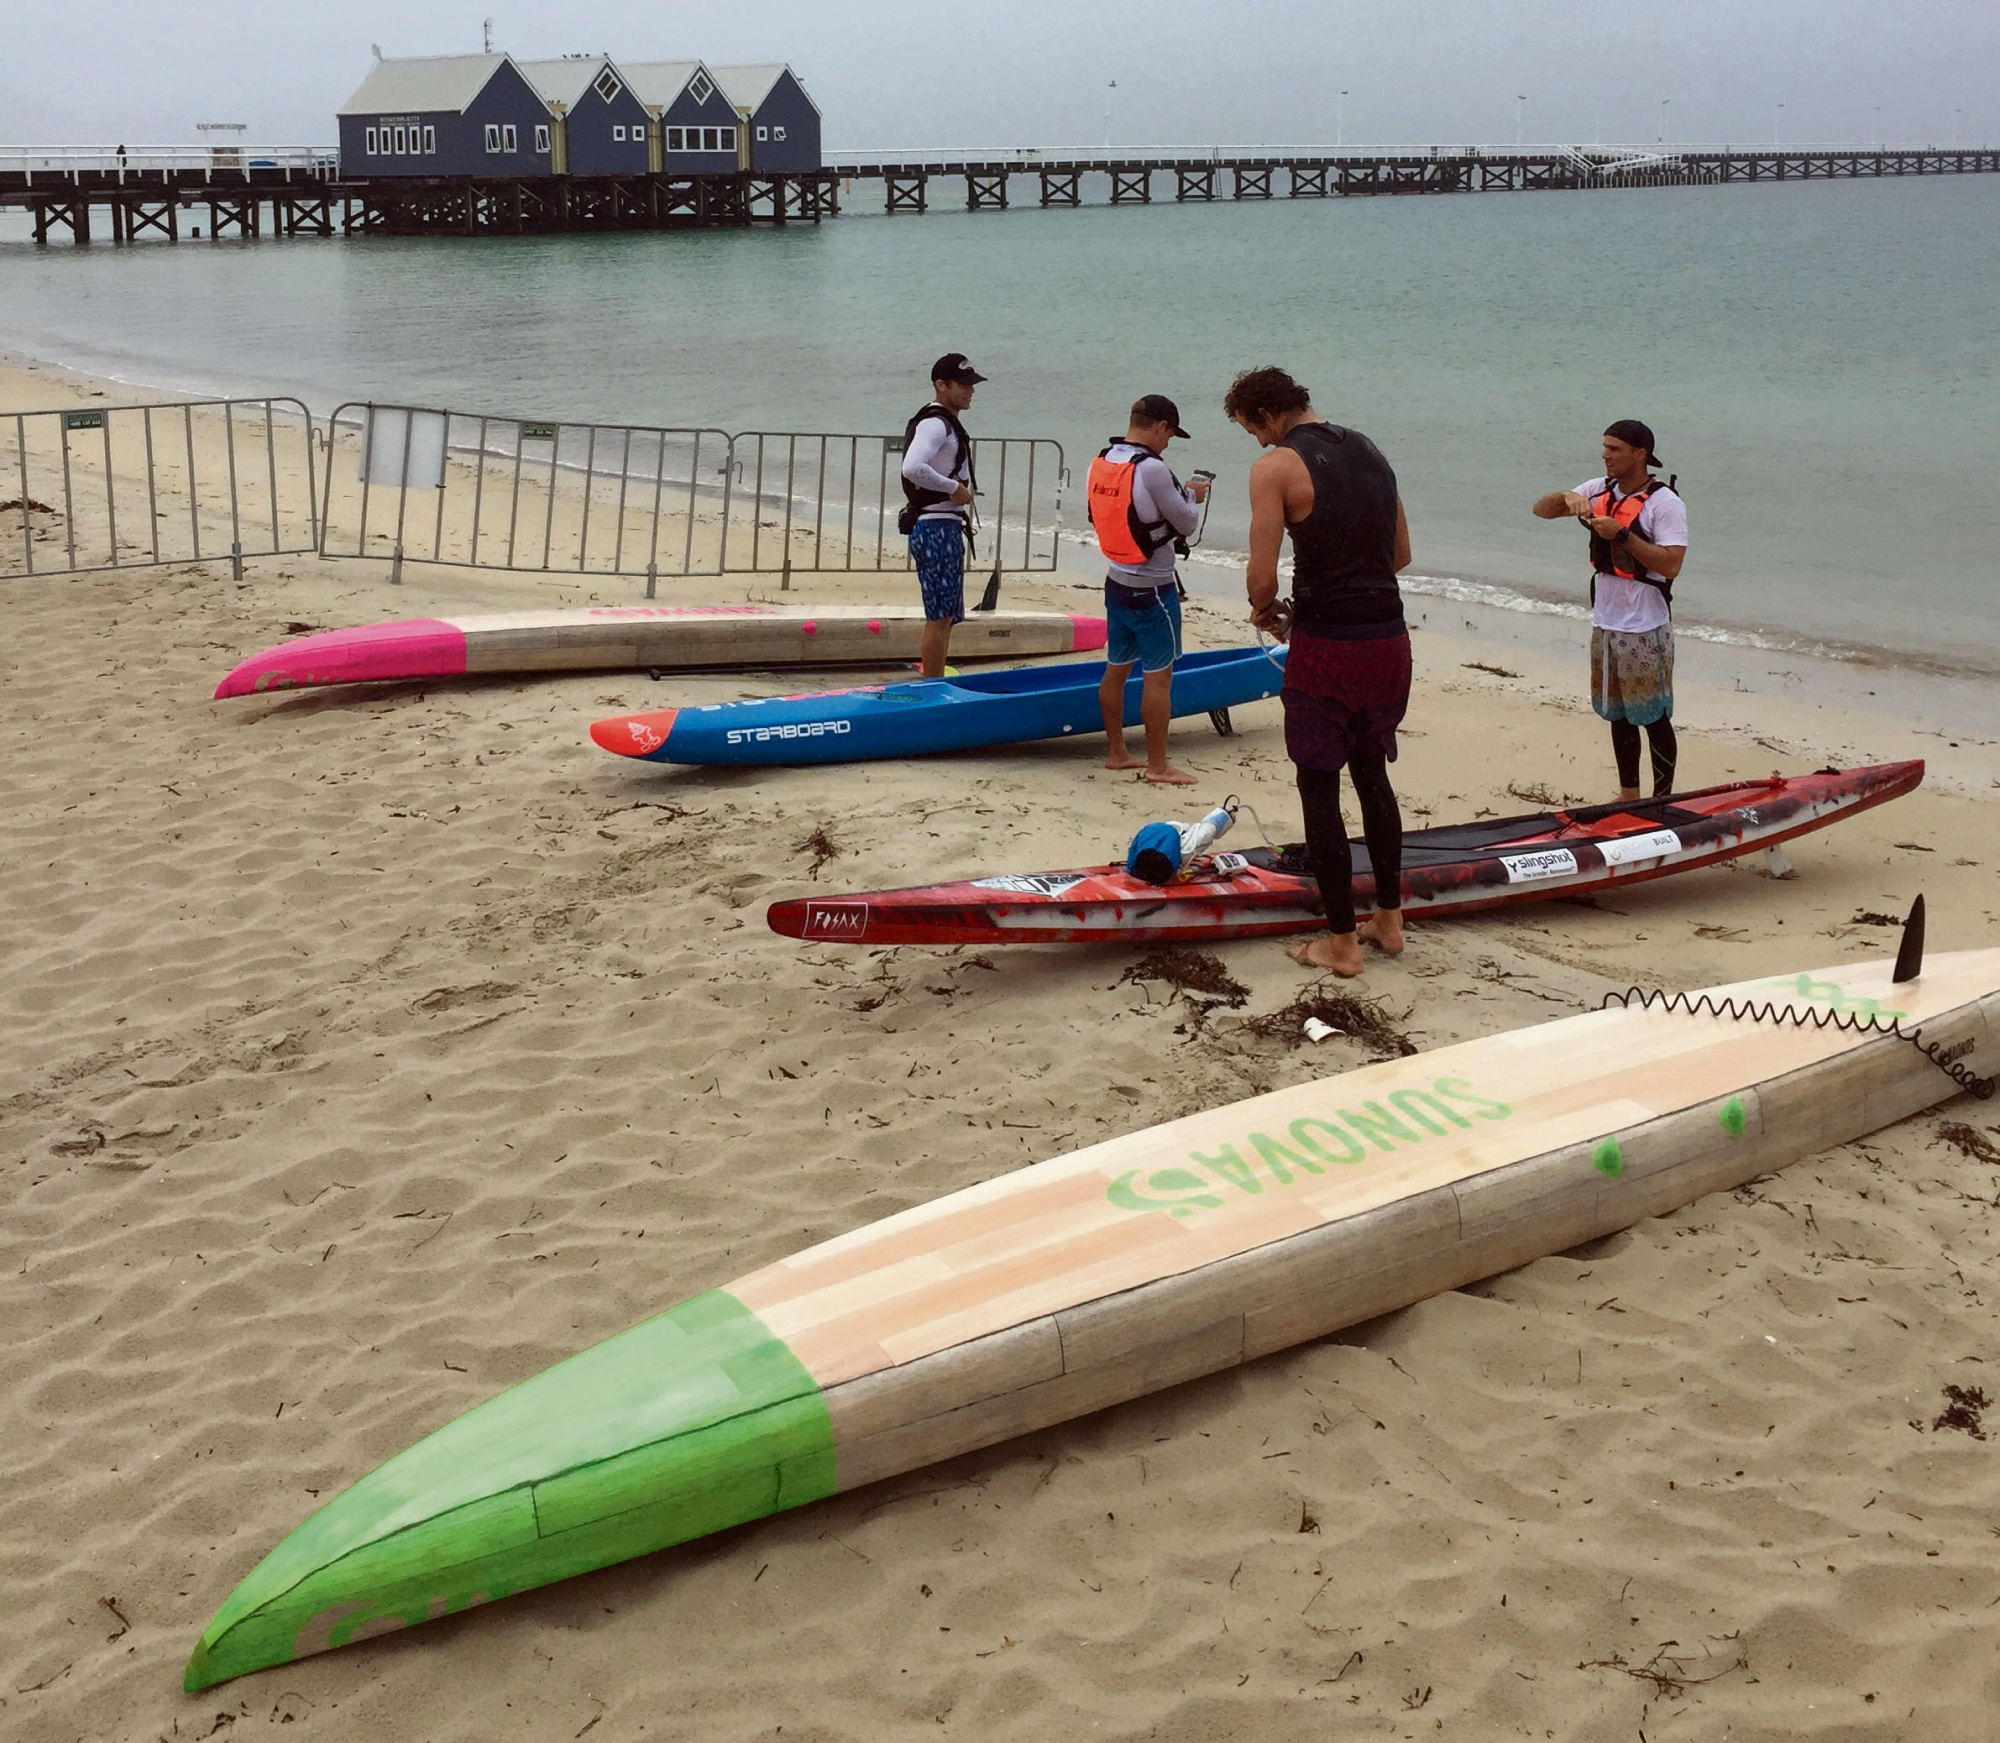 SUP boarders Cameron McKay, Luke Hallam, Michael Booth and Alex Fossiloi leave Busselton mid-way yesterday.